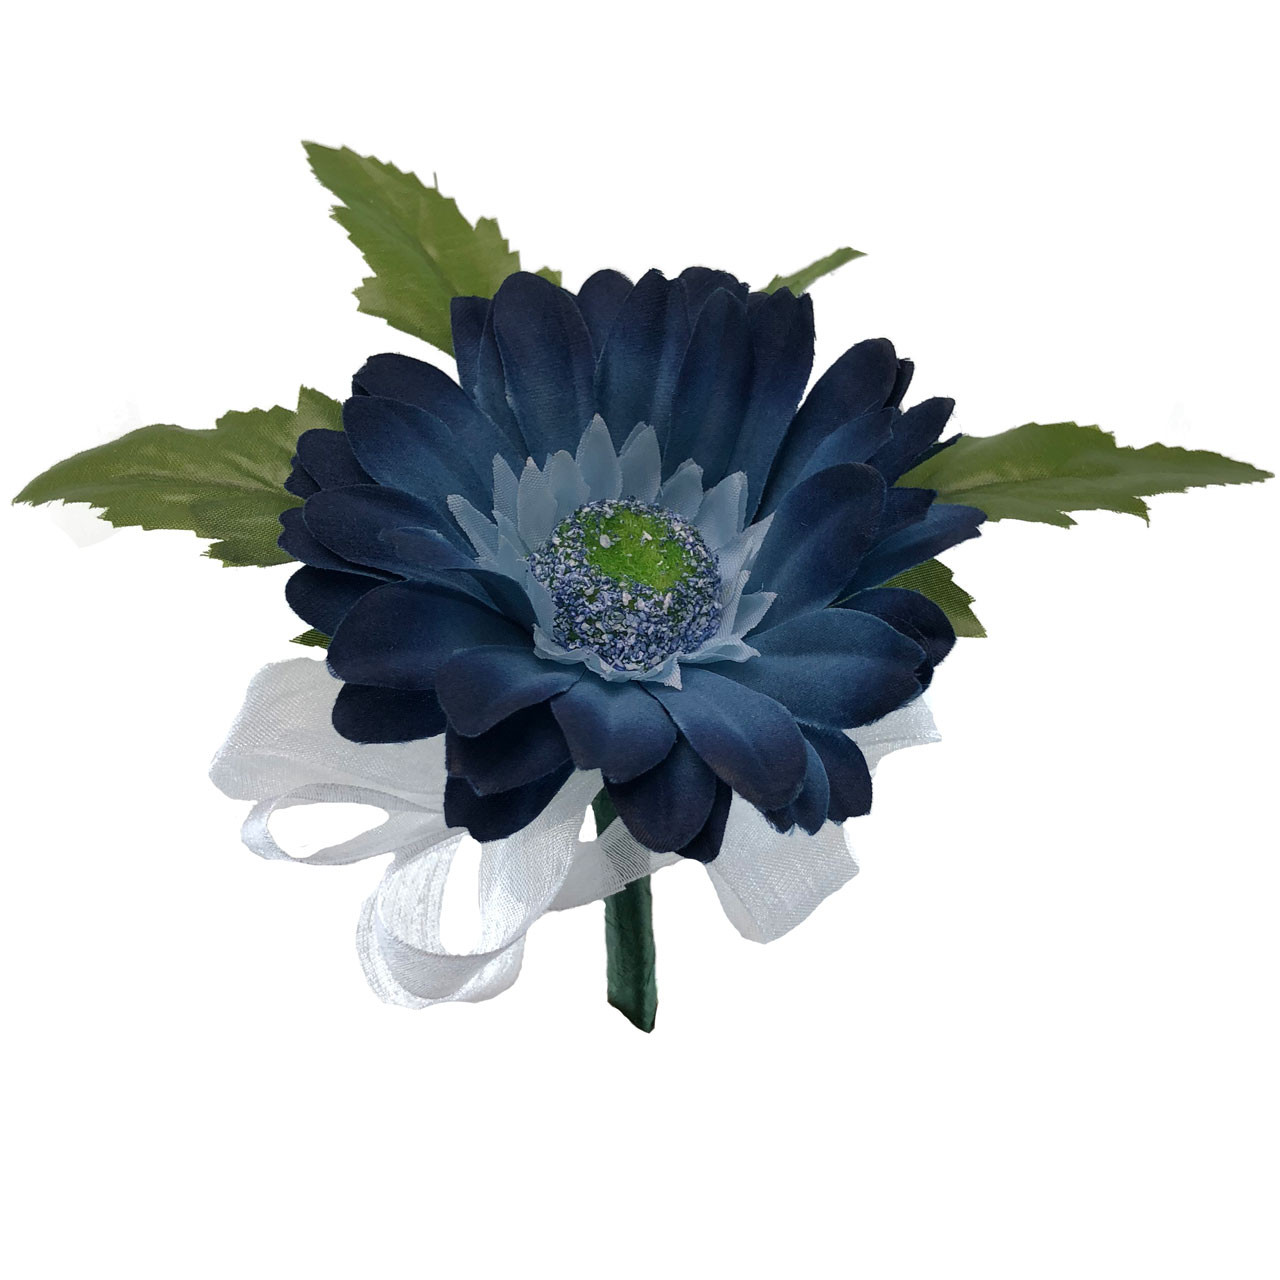 Wedding Flowers Corsage Ideas: Blue Daisy Wedding Corsages